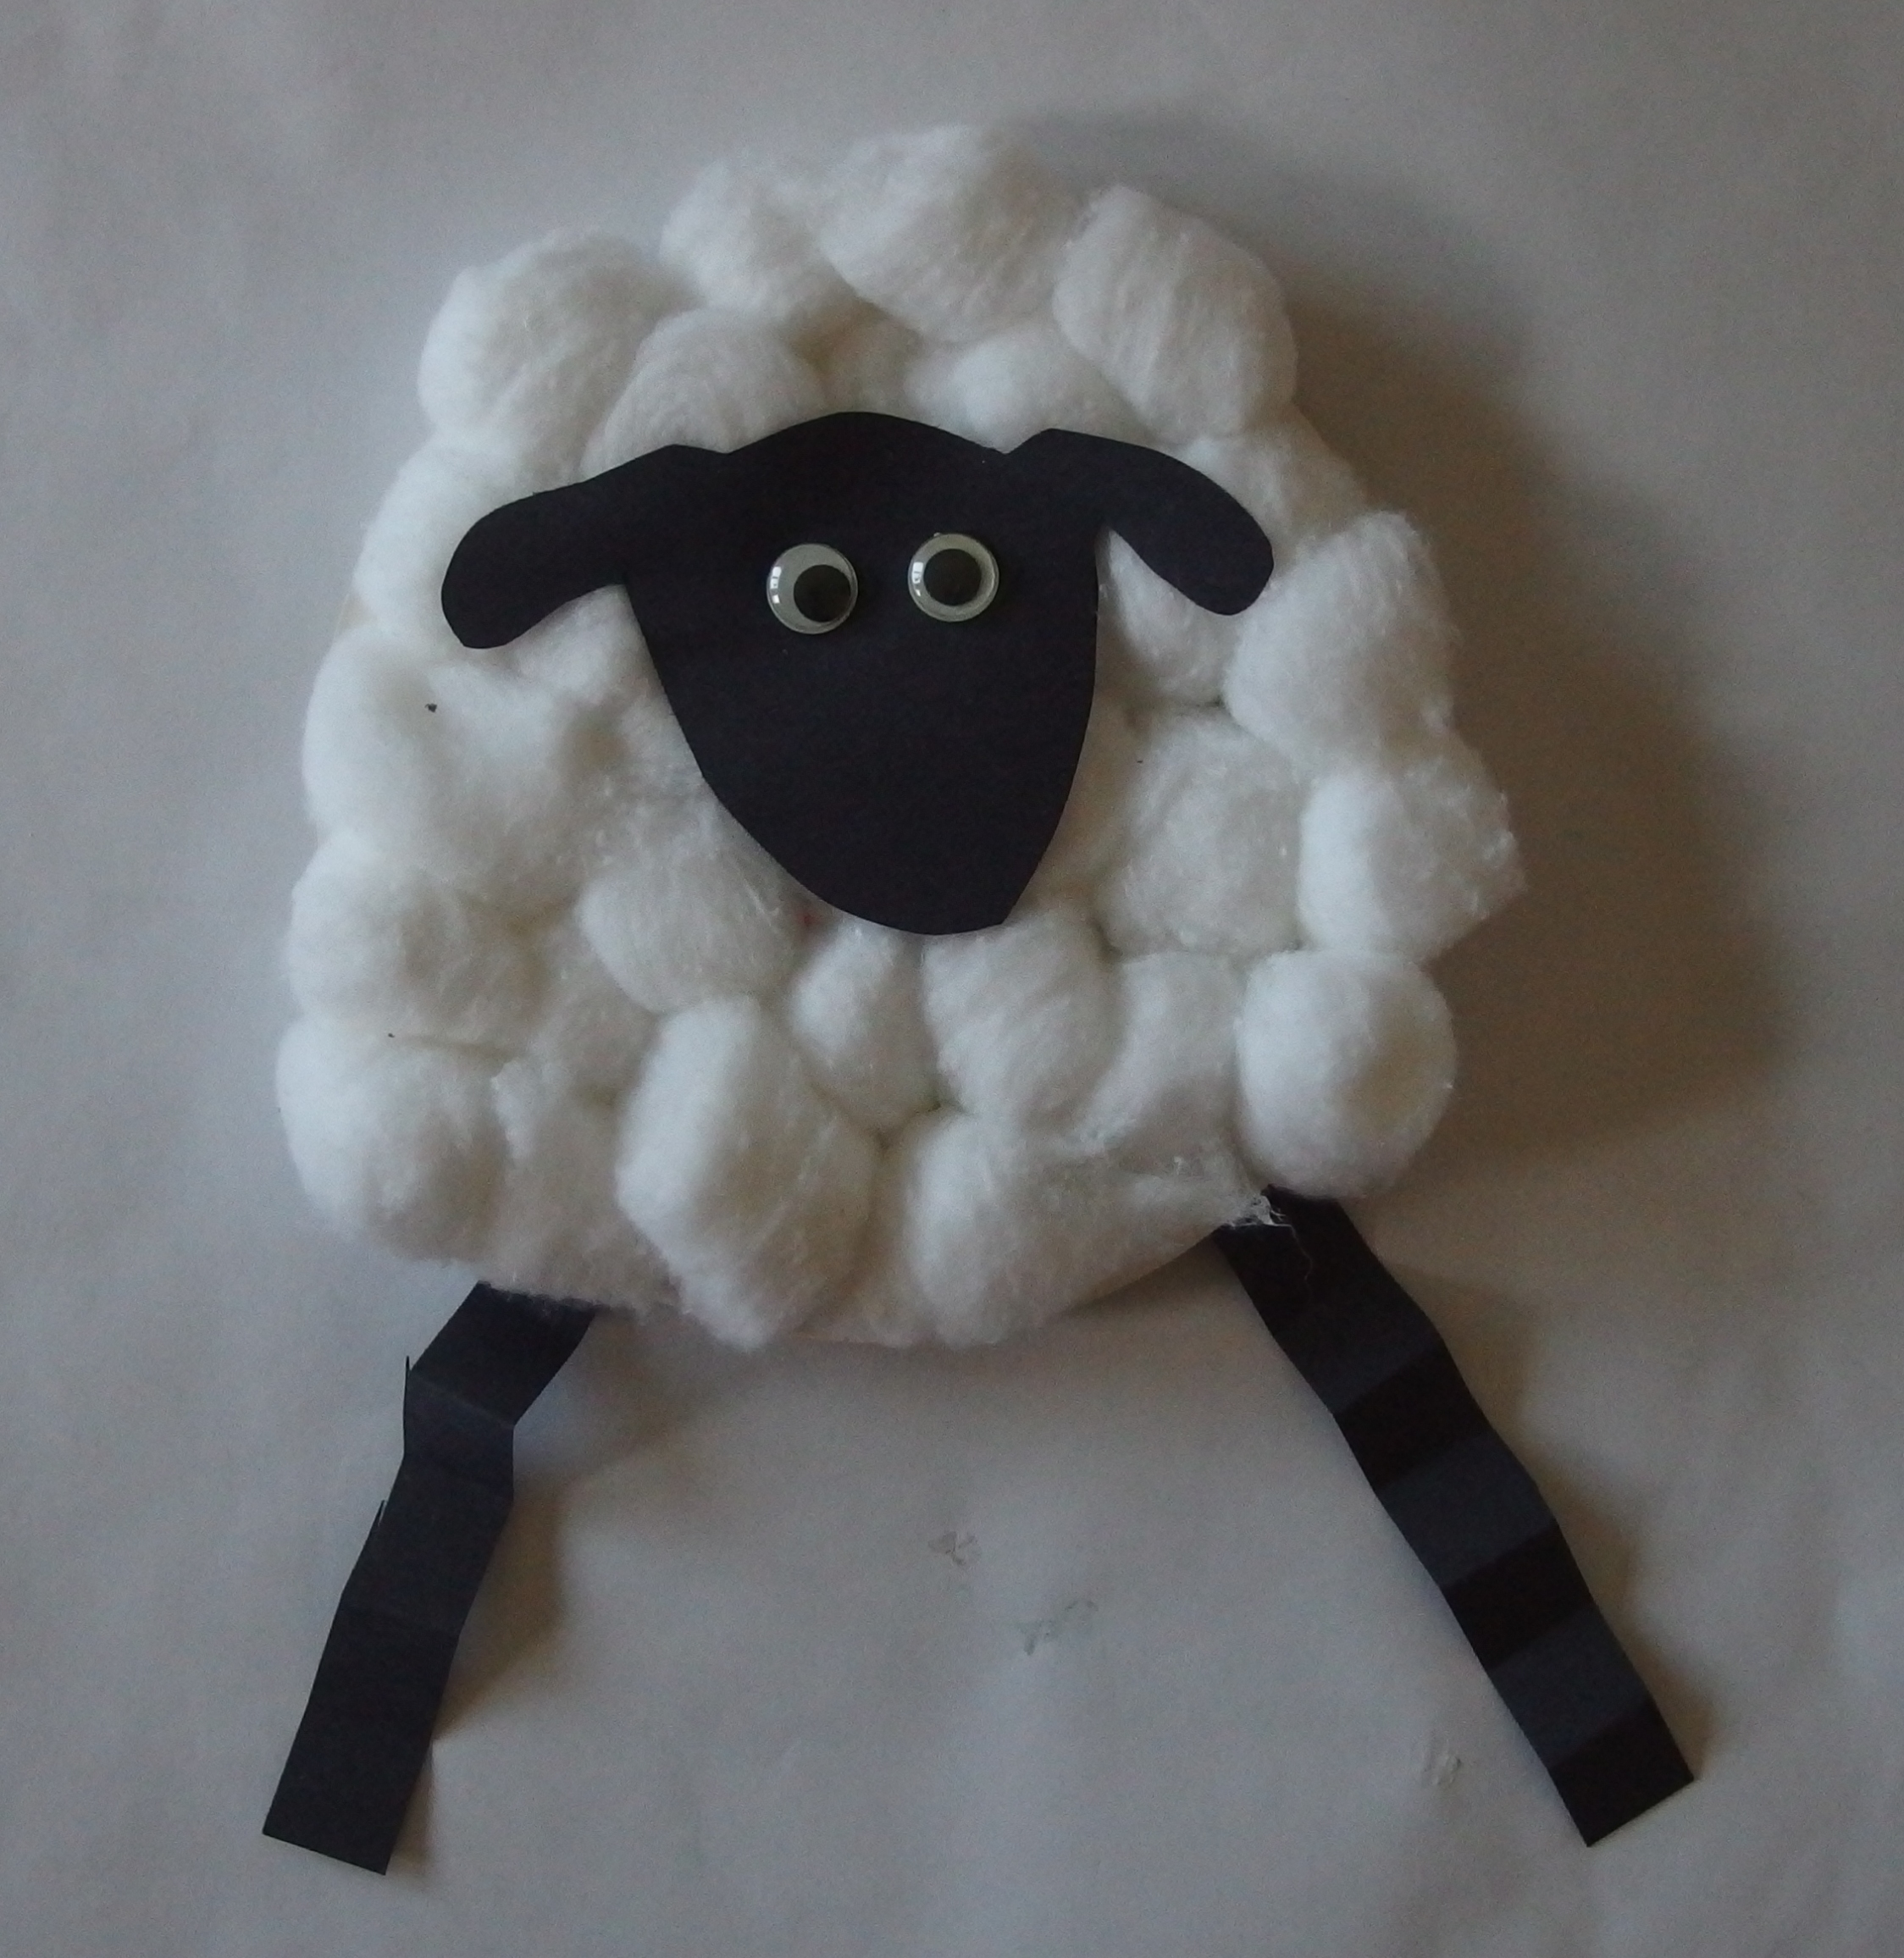 cardboard sheep template - storytime stories knees and the land of cheese